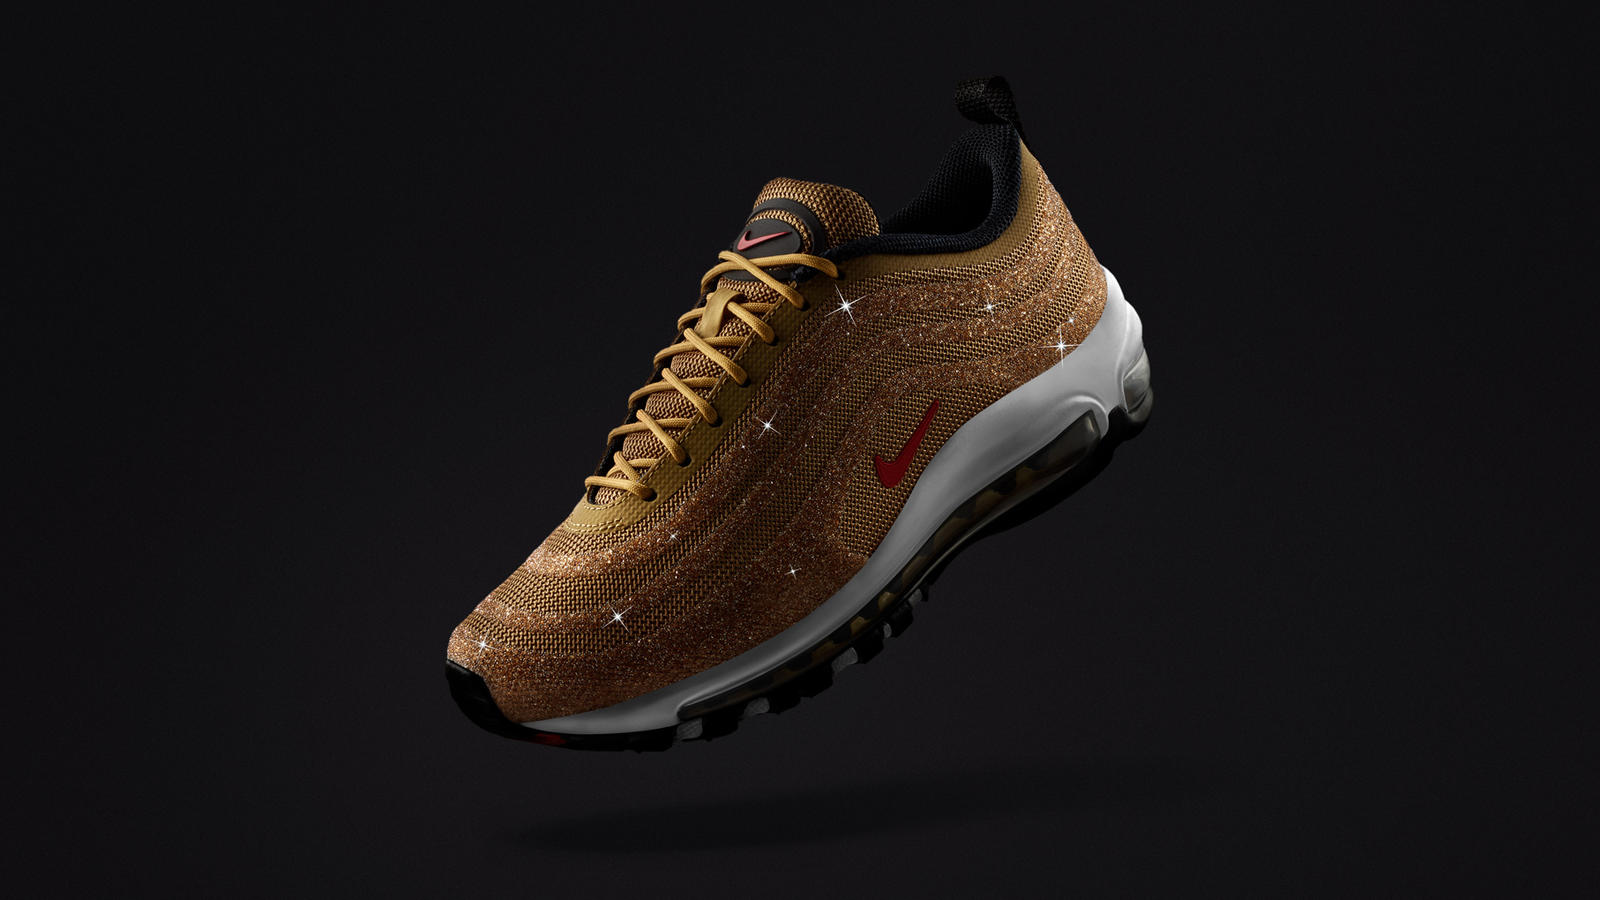 64afa961c3f2 Nike Air Max 97 Gold Swarovski® Crystal - Nike News